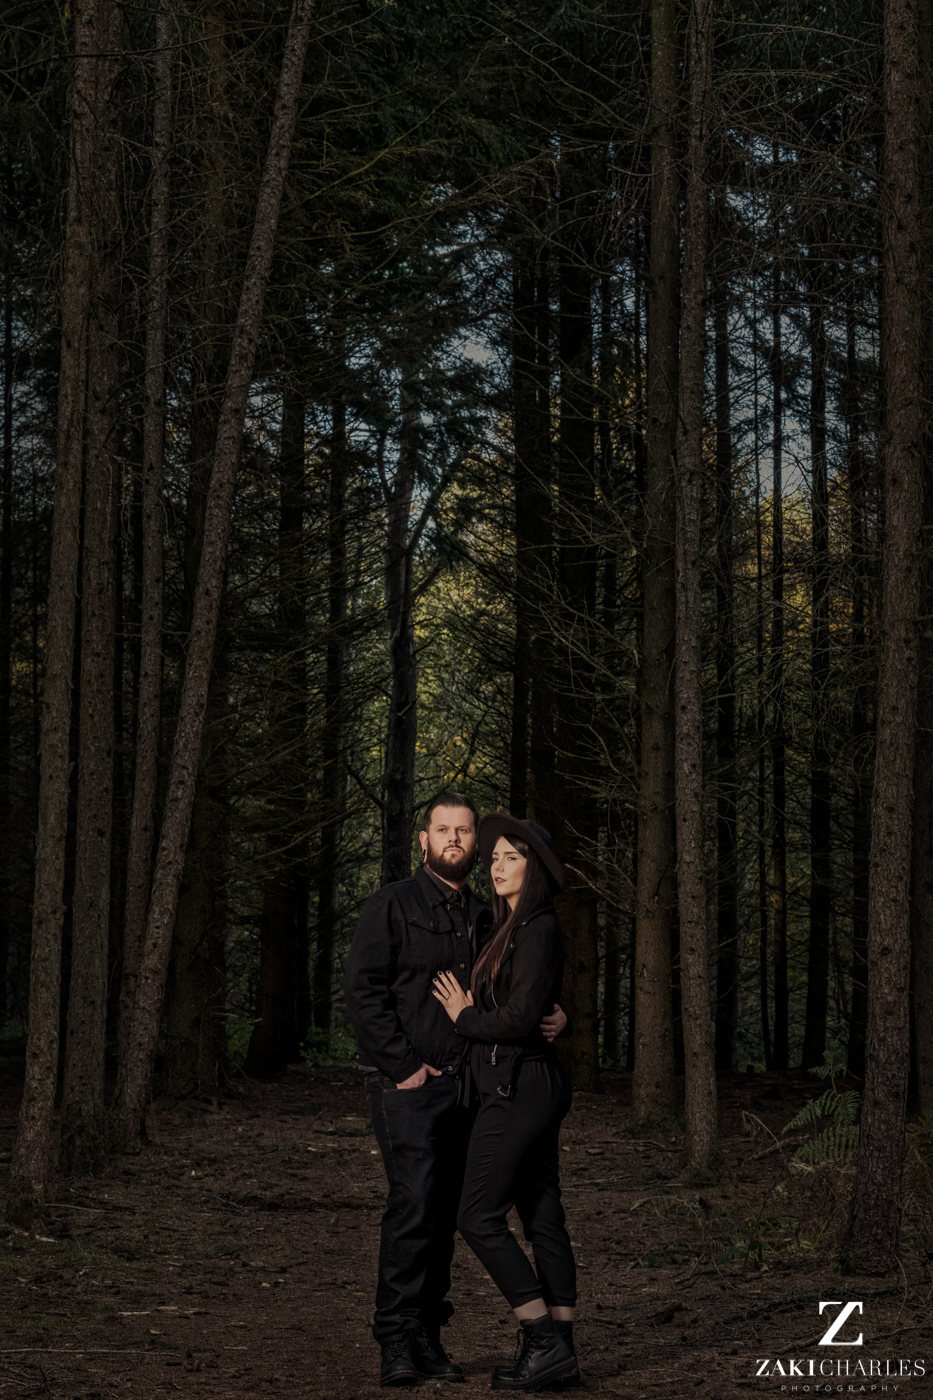 Black Park Engagement Session, Kirsty & Alex Zaki Charles Photography 1